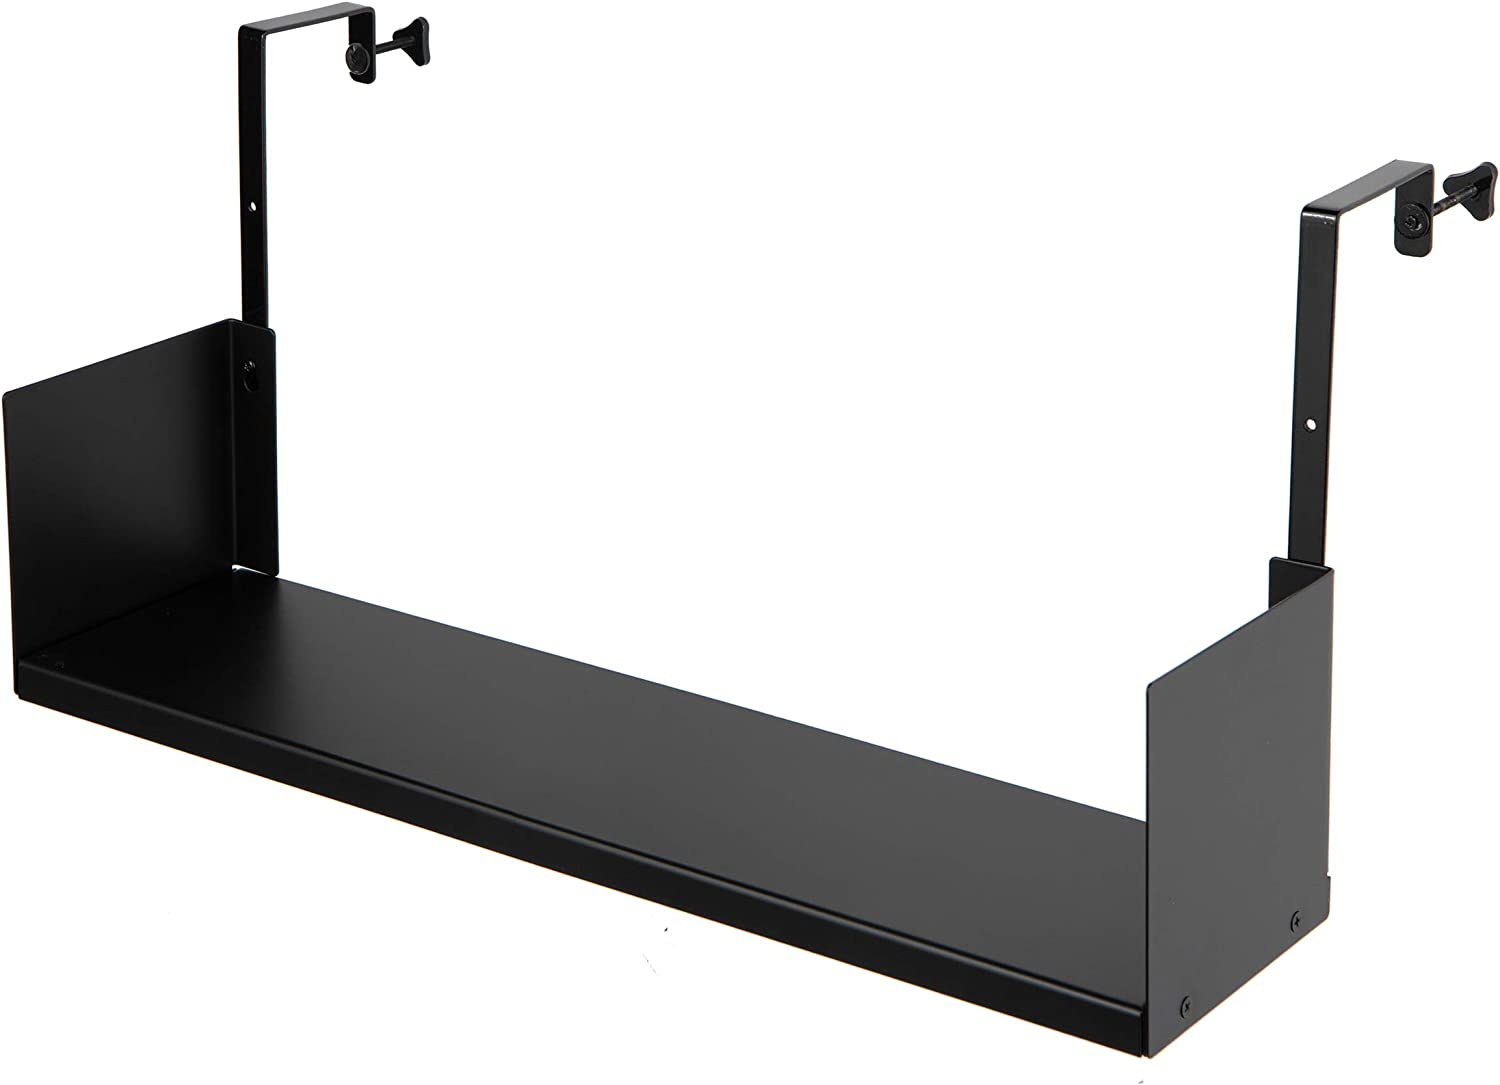 Wallniture Buro Cubicle Hanger Bookshelf and Home Office Desk Organizer Tray, Black Storage Organizer 27""